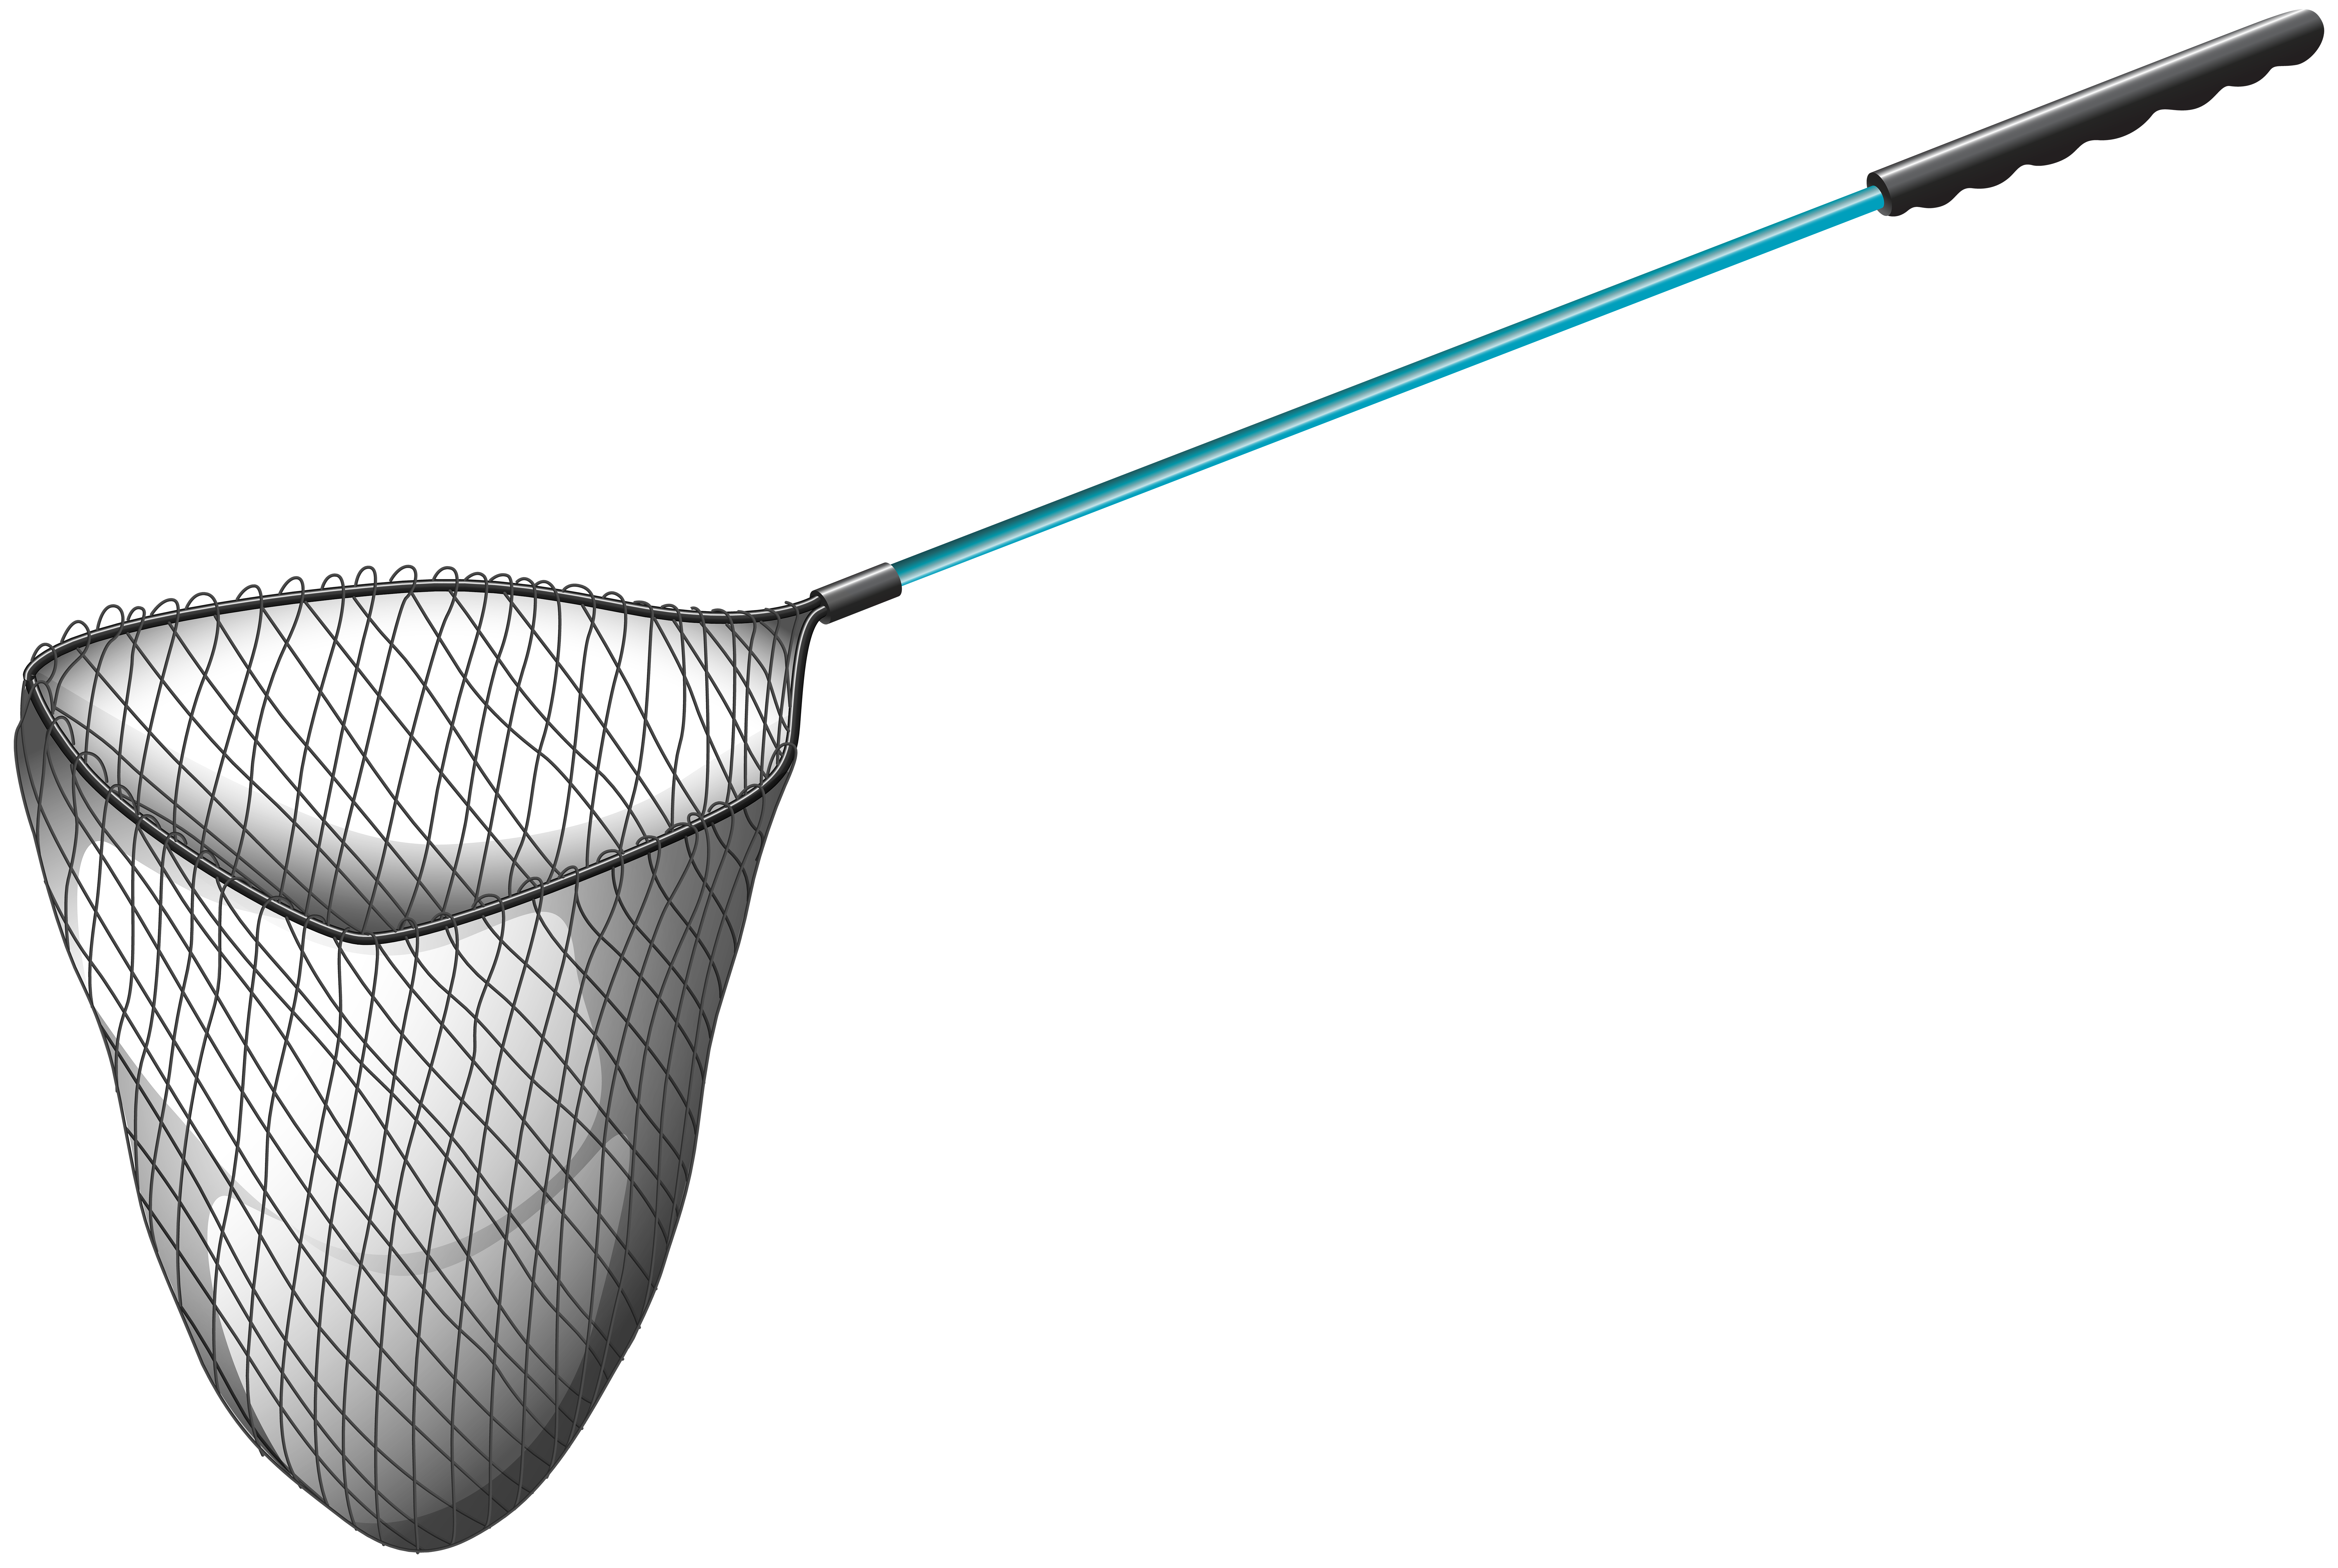 Fish net clipart graphic royalty free Fishing Net PNG Clip Art - Best WEB Clipart graphic royalty free